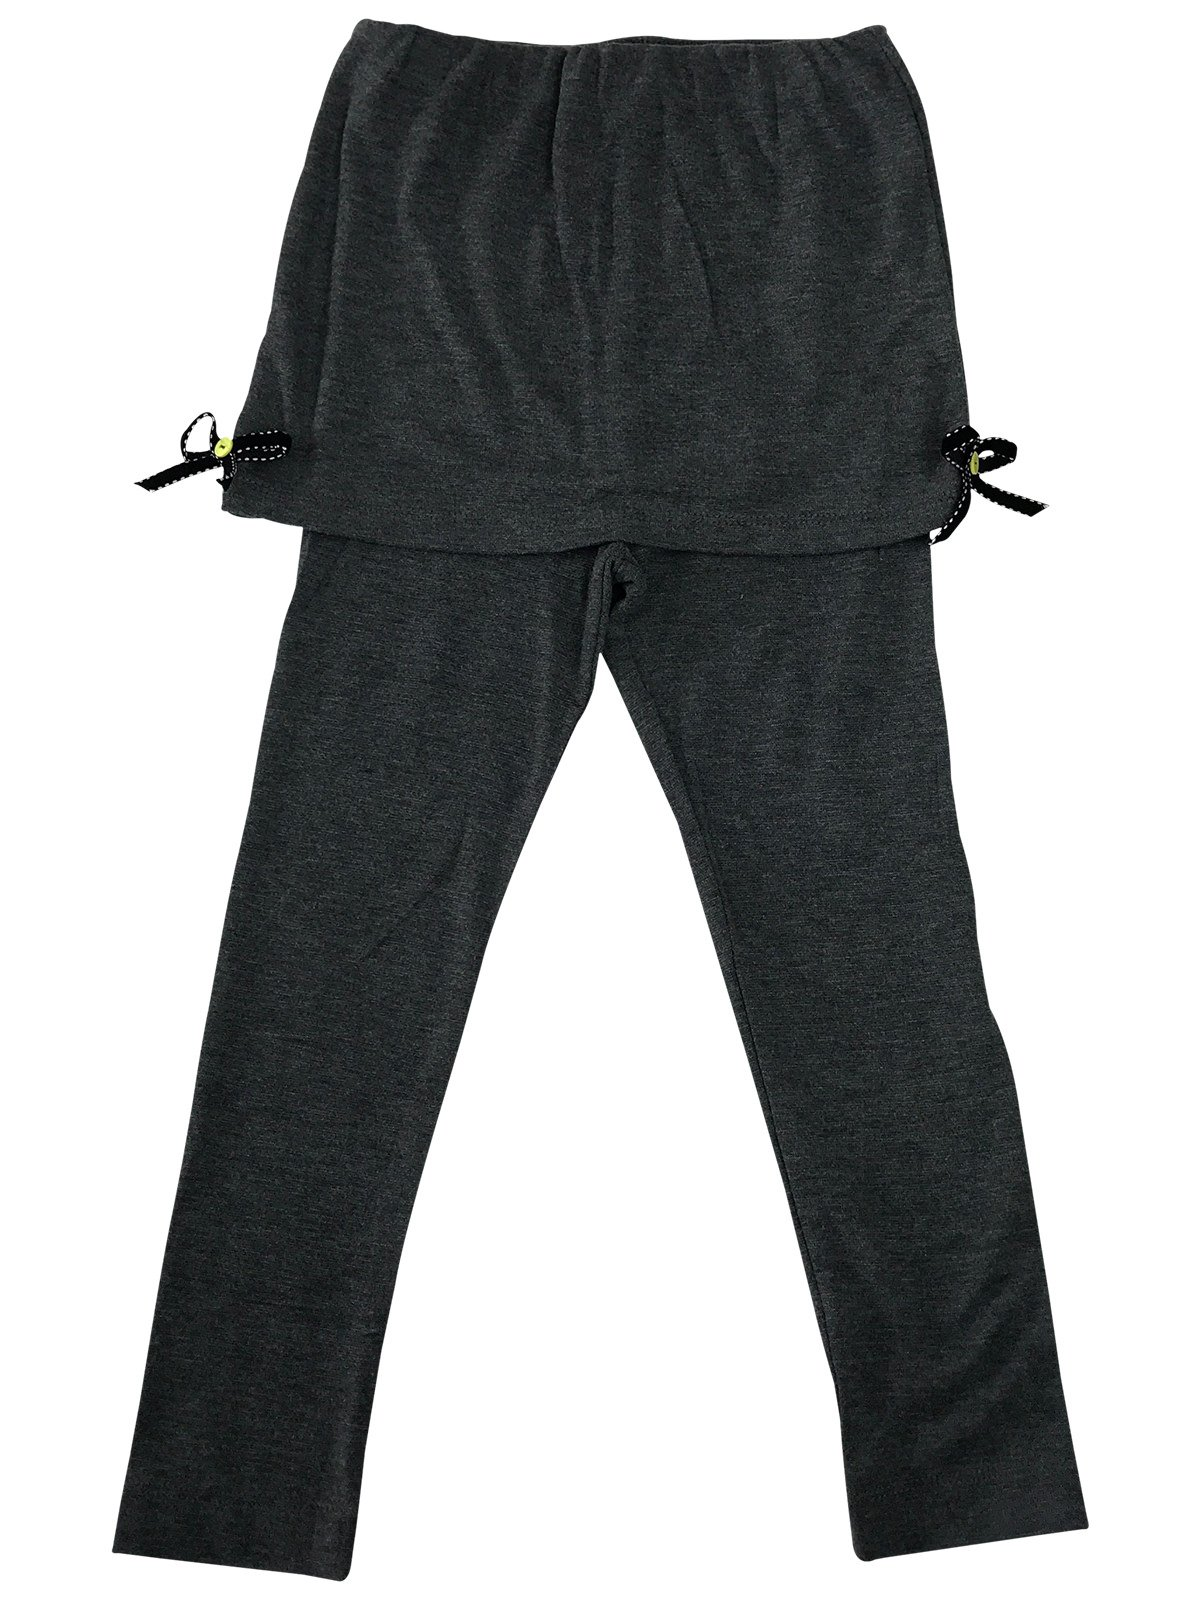 Ankle Length Legging with Shorts & Ribbons Sewed On for Little Girls Grey 7T B90002